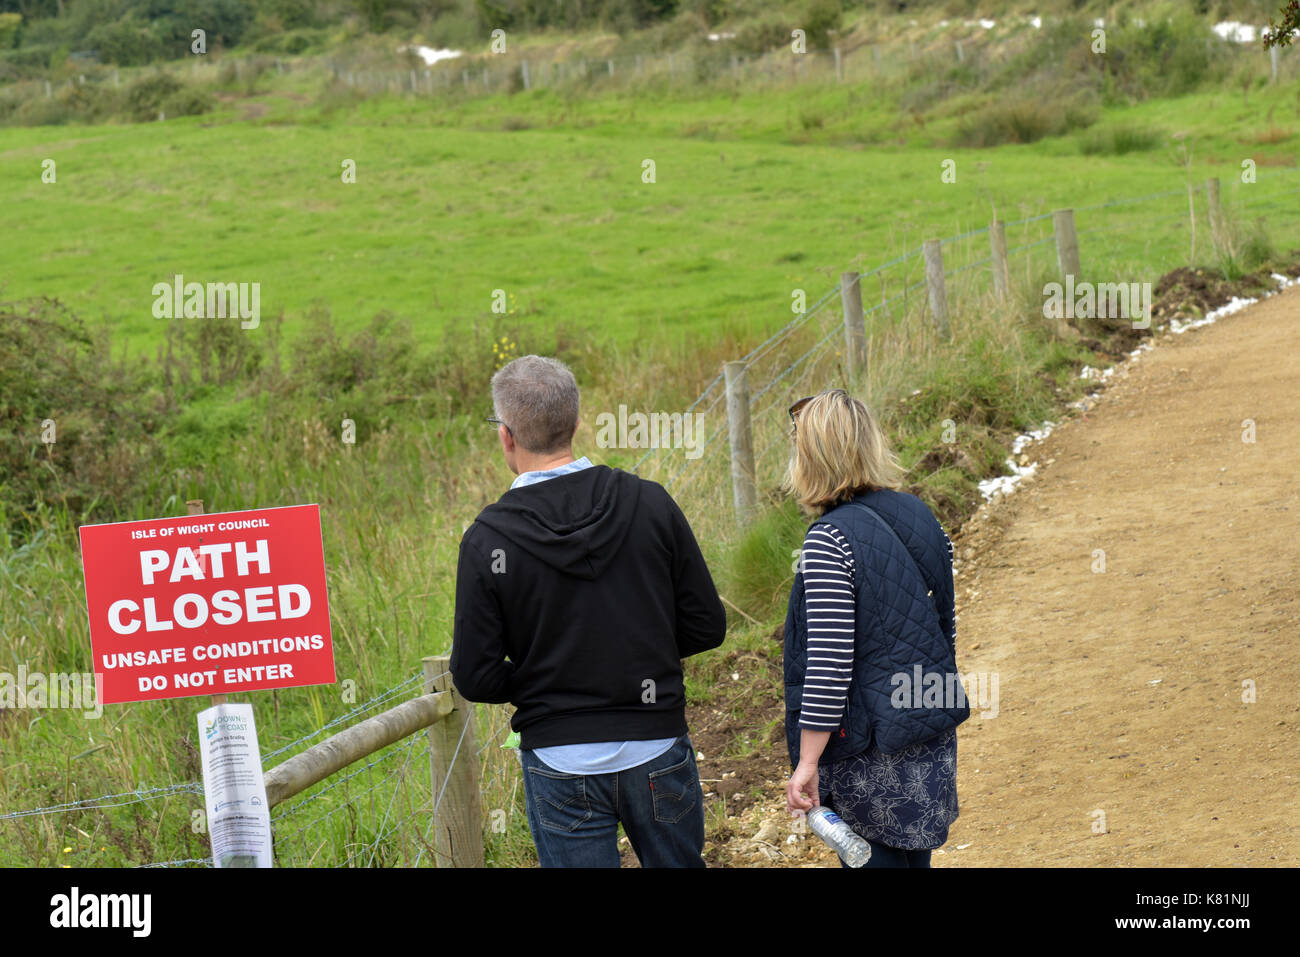 A 'road closed' 'path closed 'sign and a couple a man and a woman walking past and ignoring the instruction or warning. Disregarding safety notices. - Stock Image